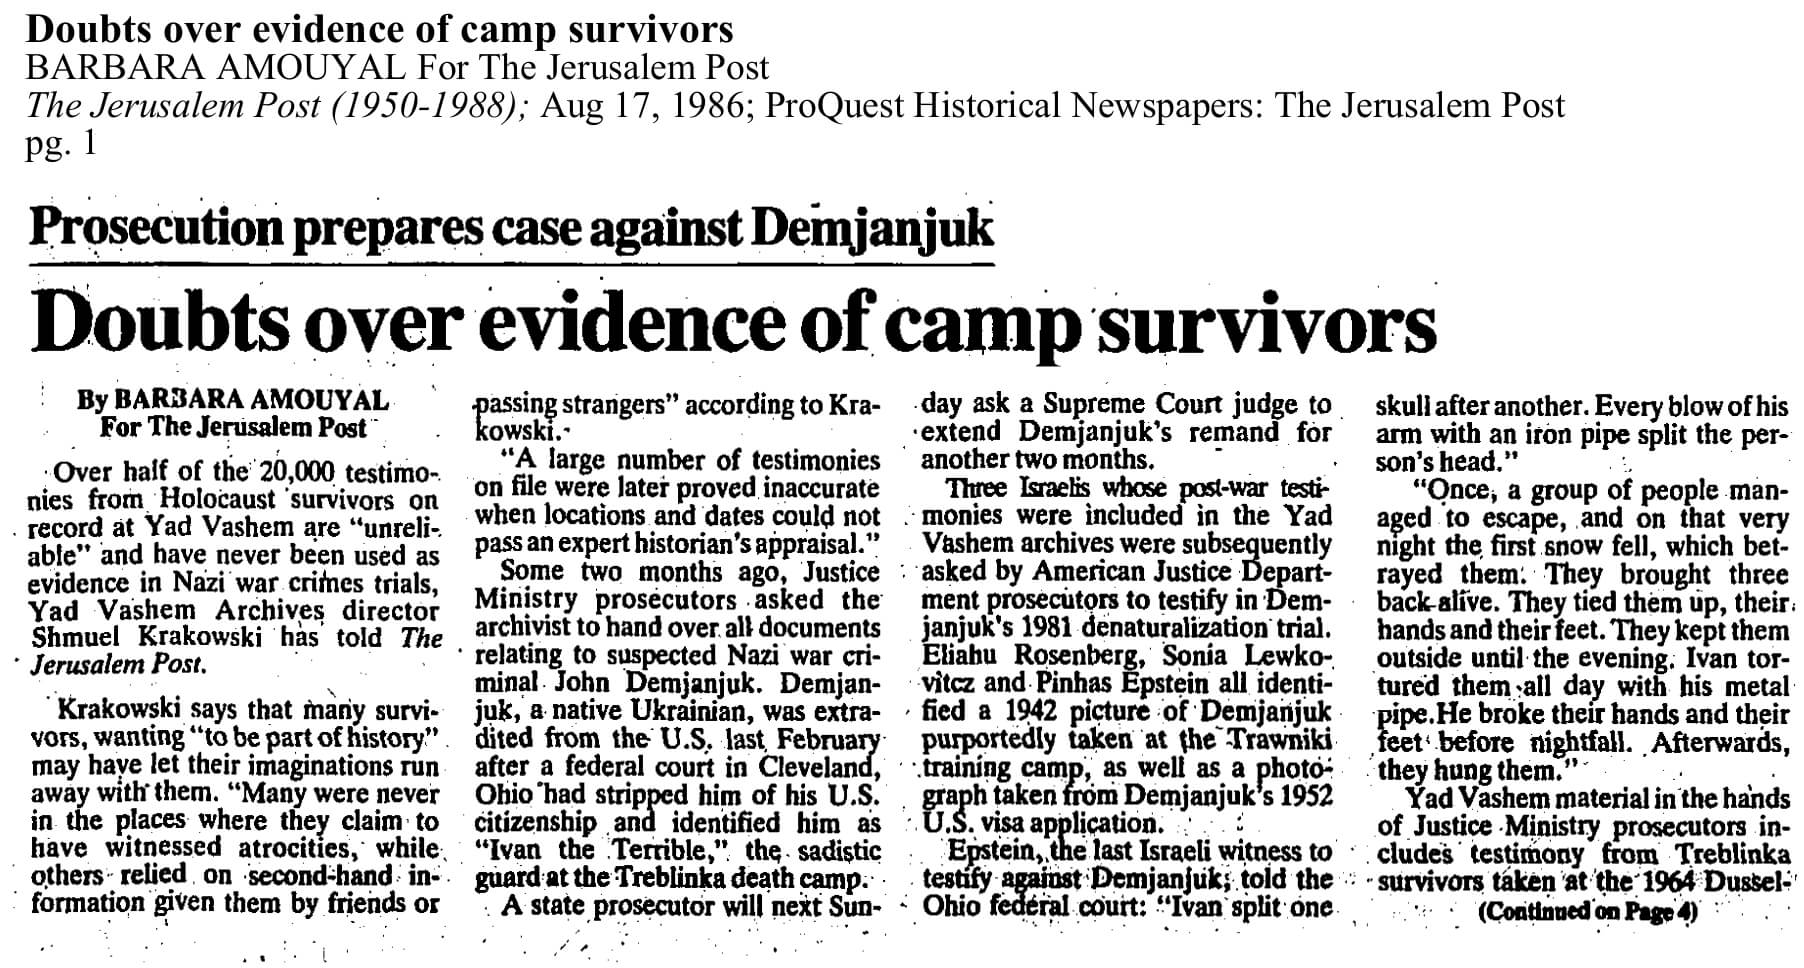 Doubts_over_evidence_of_camp_s (1).jpg